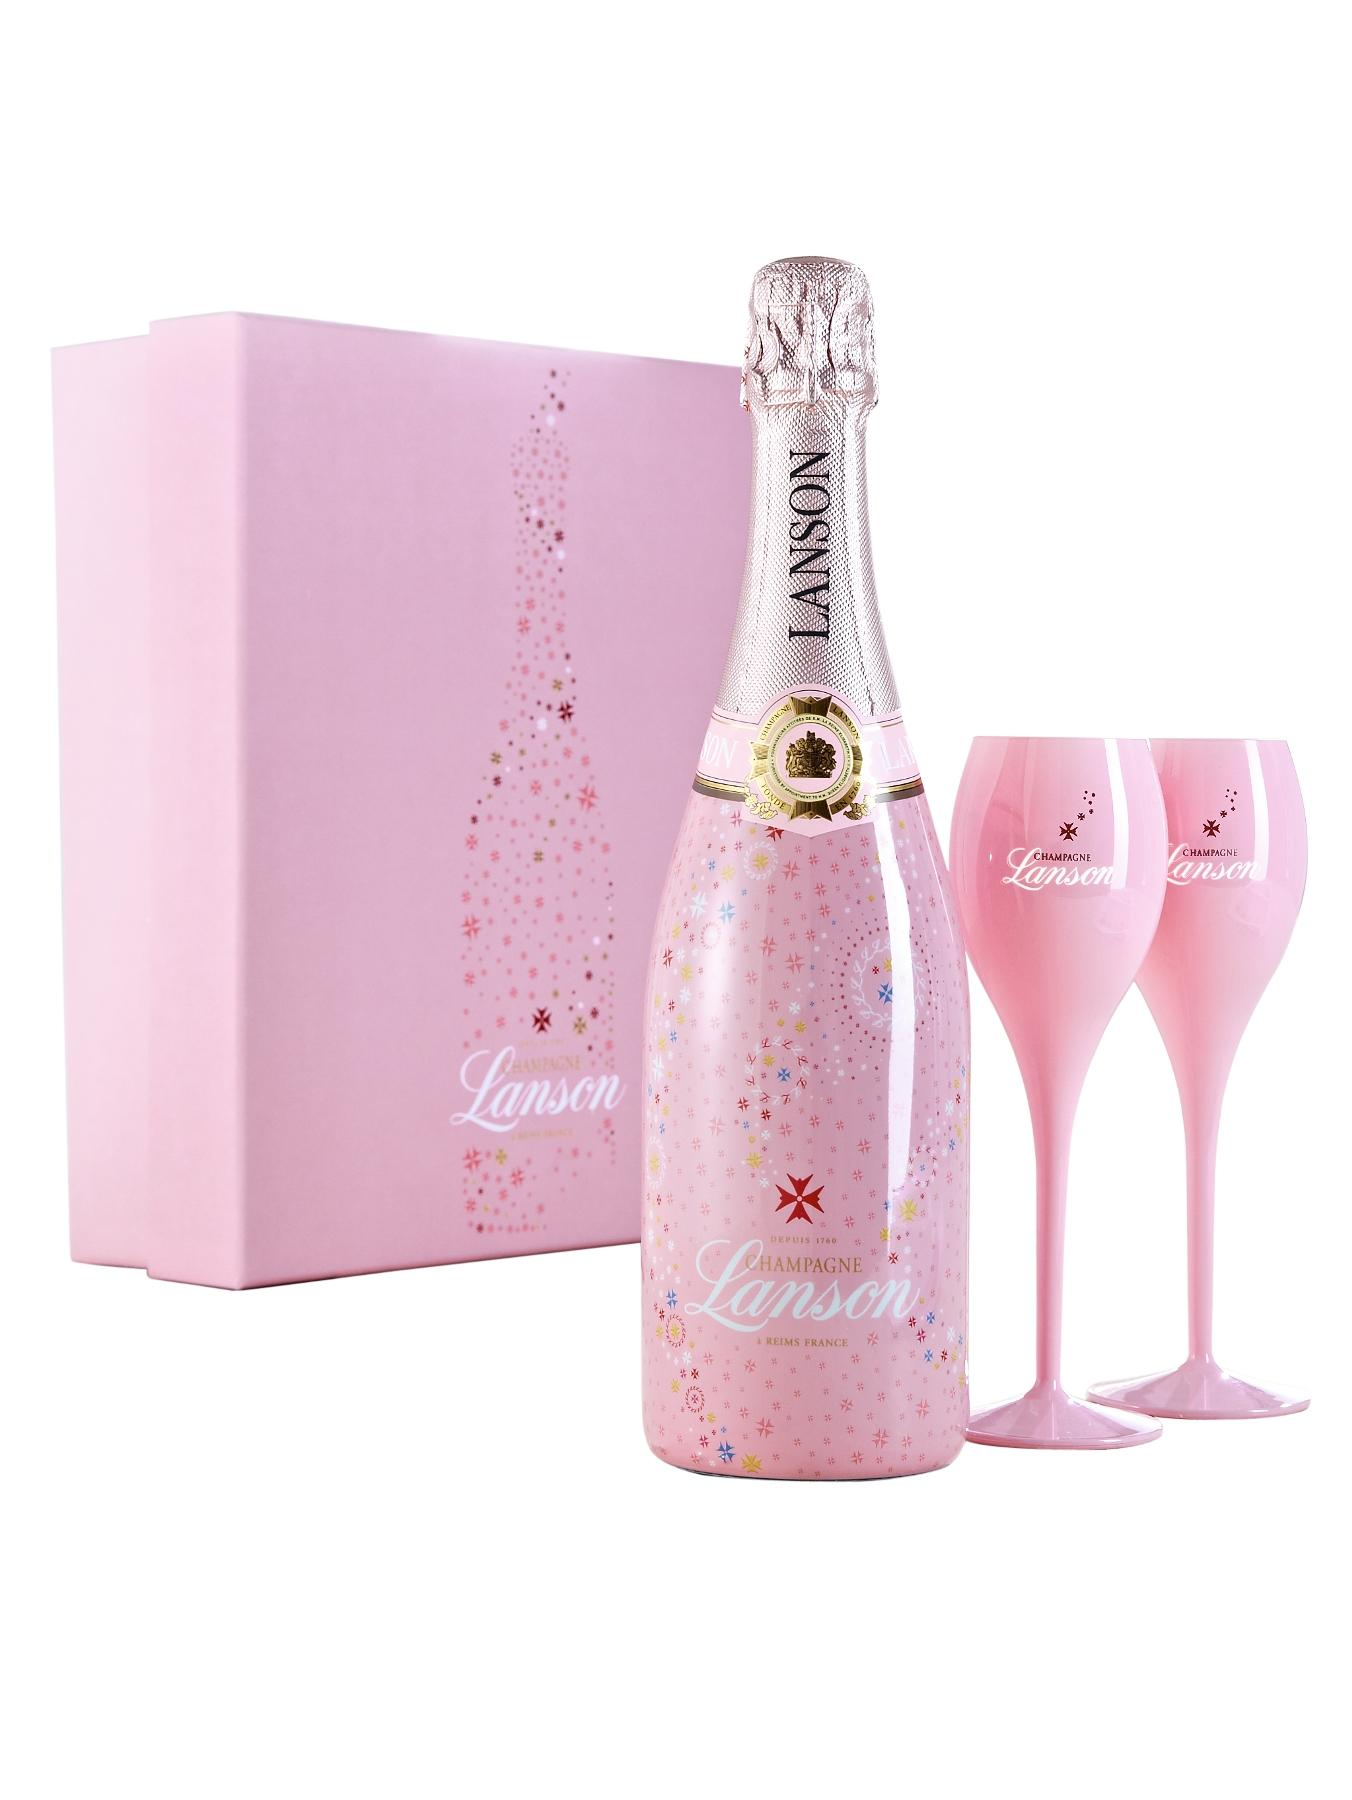 Rose Champagne Deluxe Gift Pack with 2 Pink Champagne Flutes